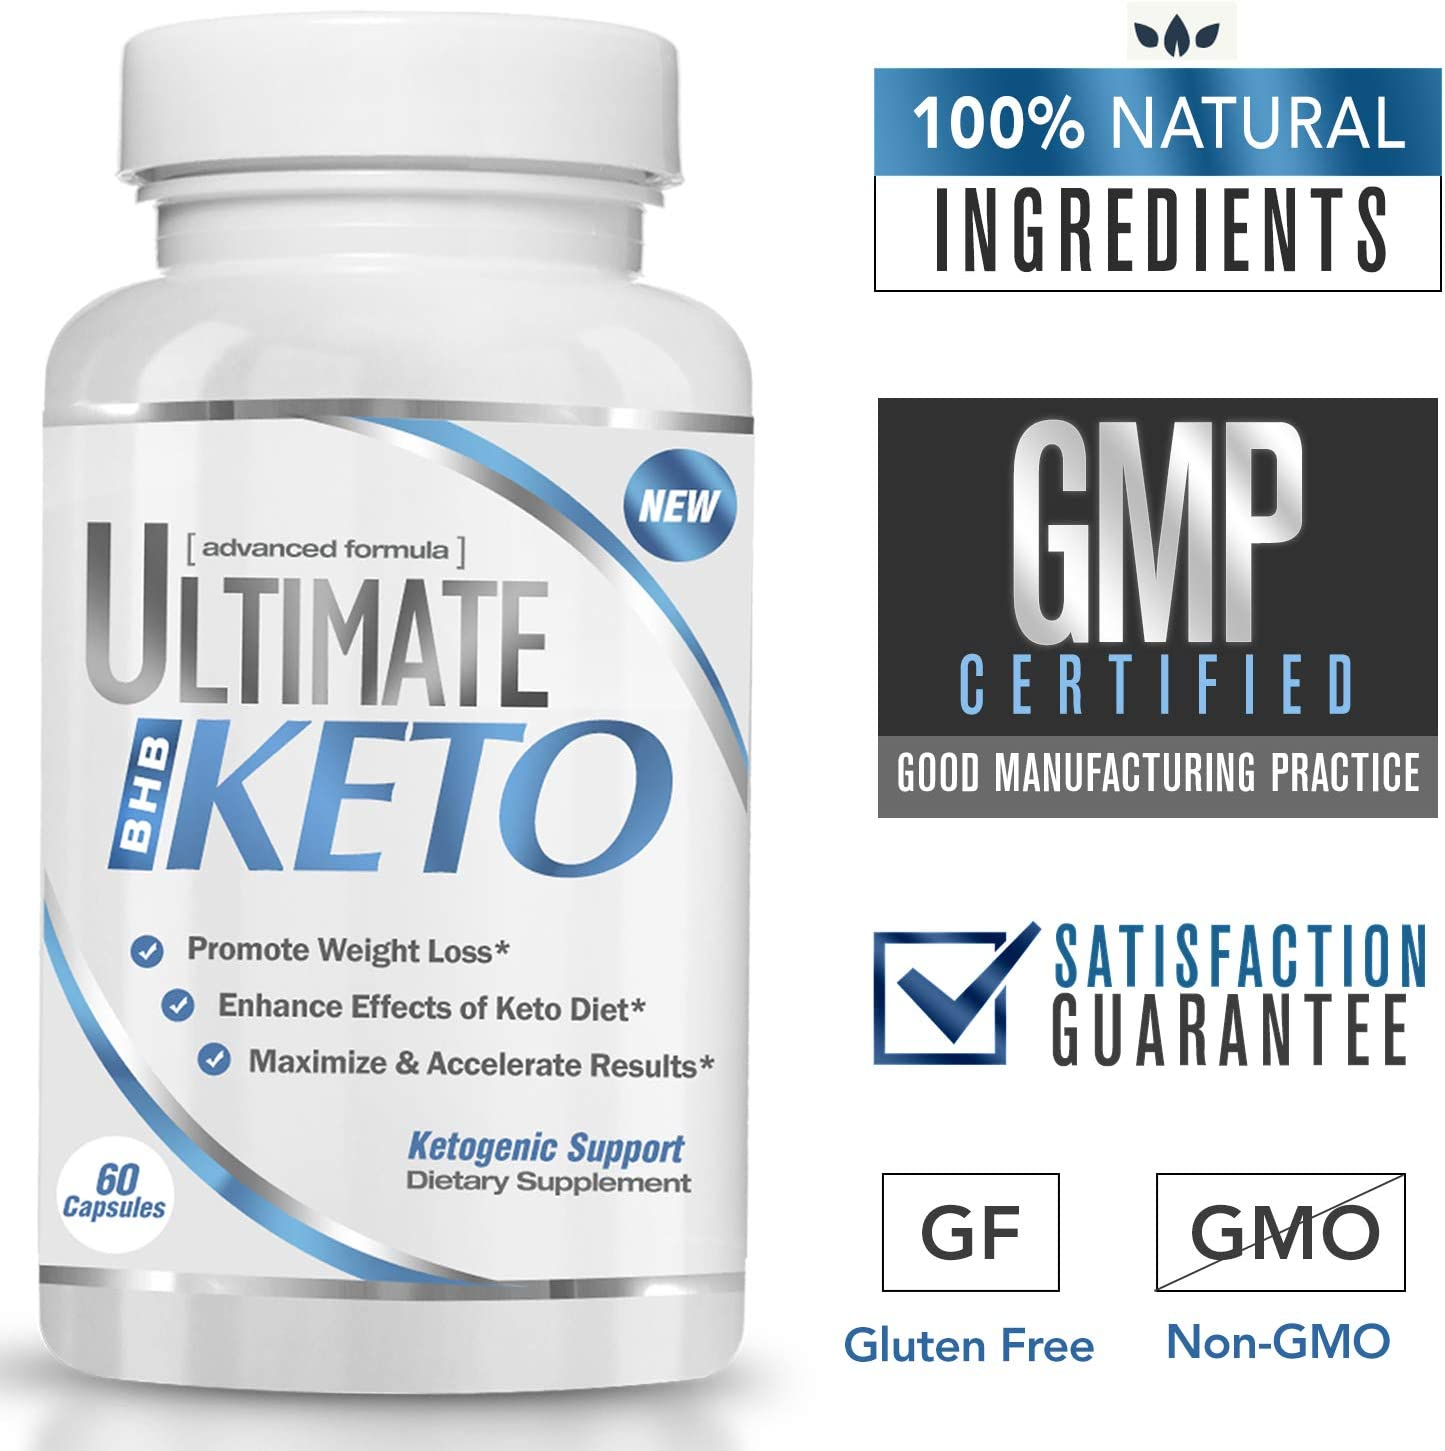 Is Ultimate Keto Safe?